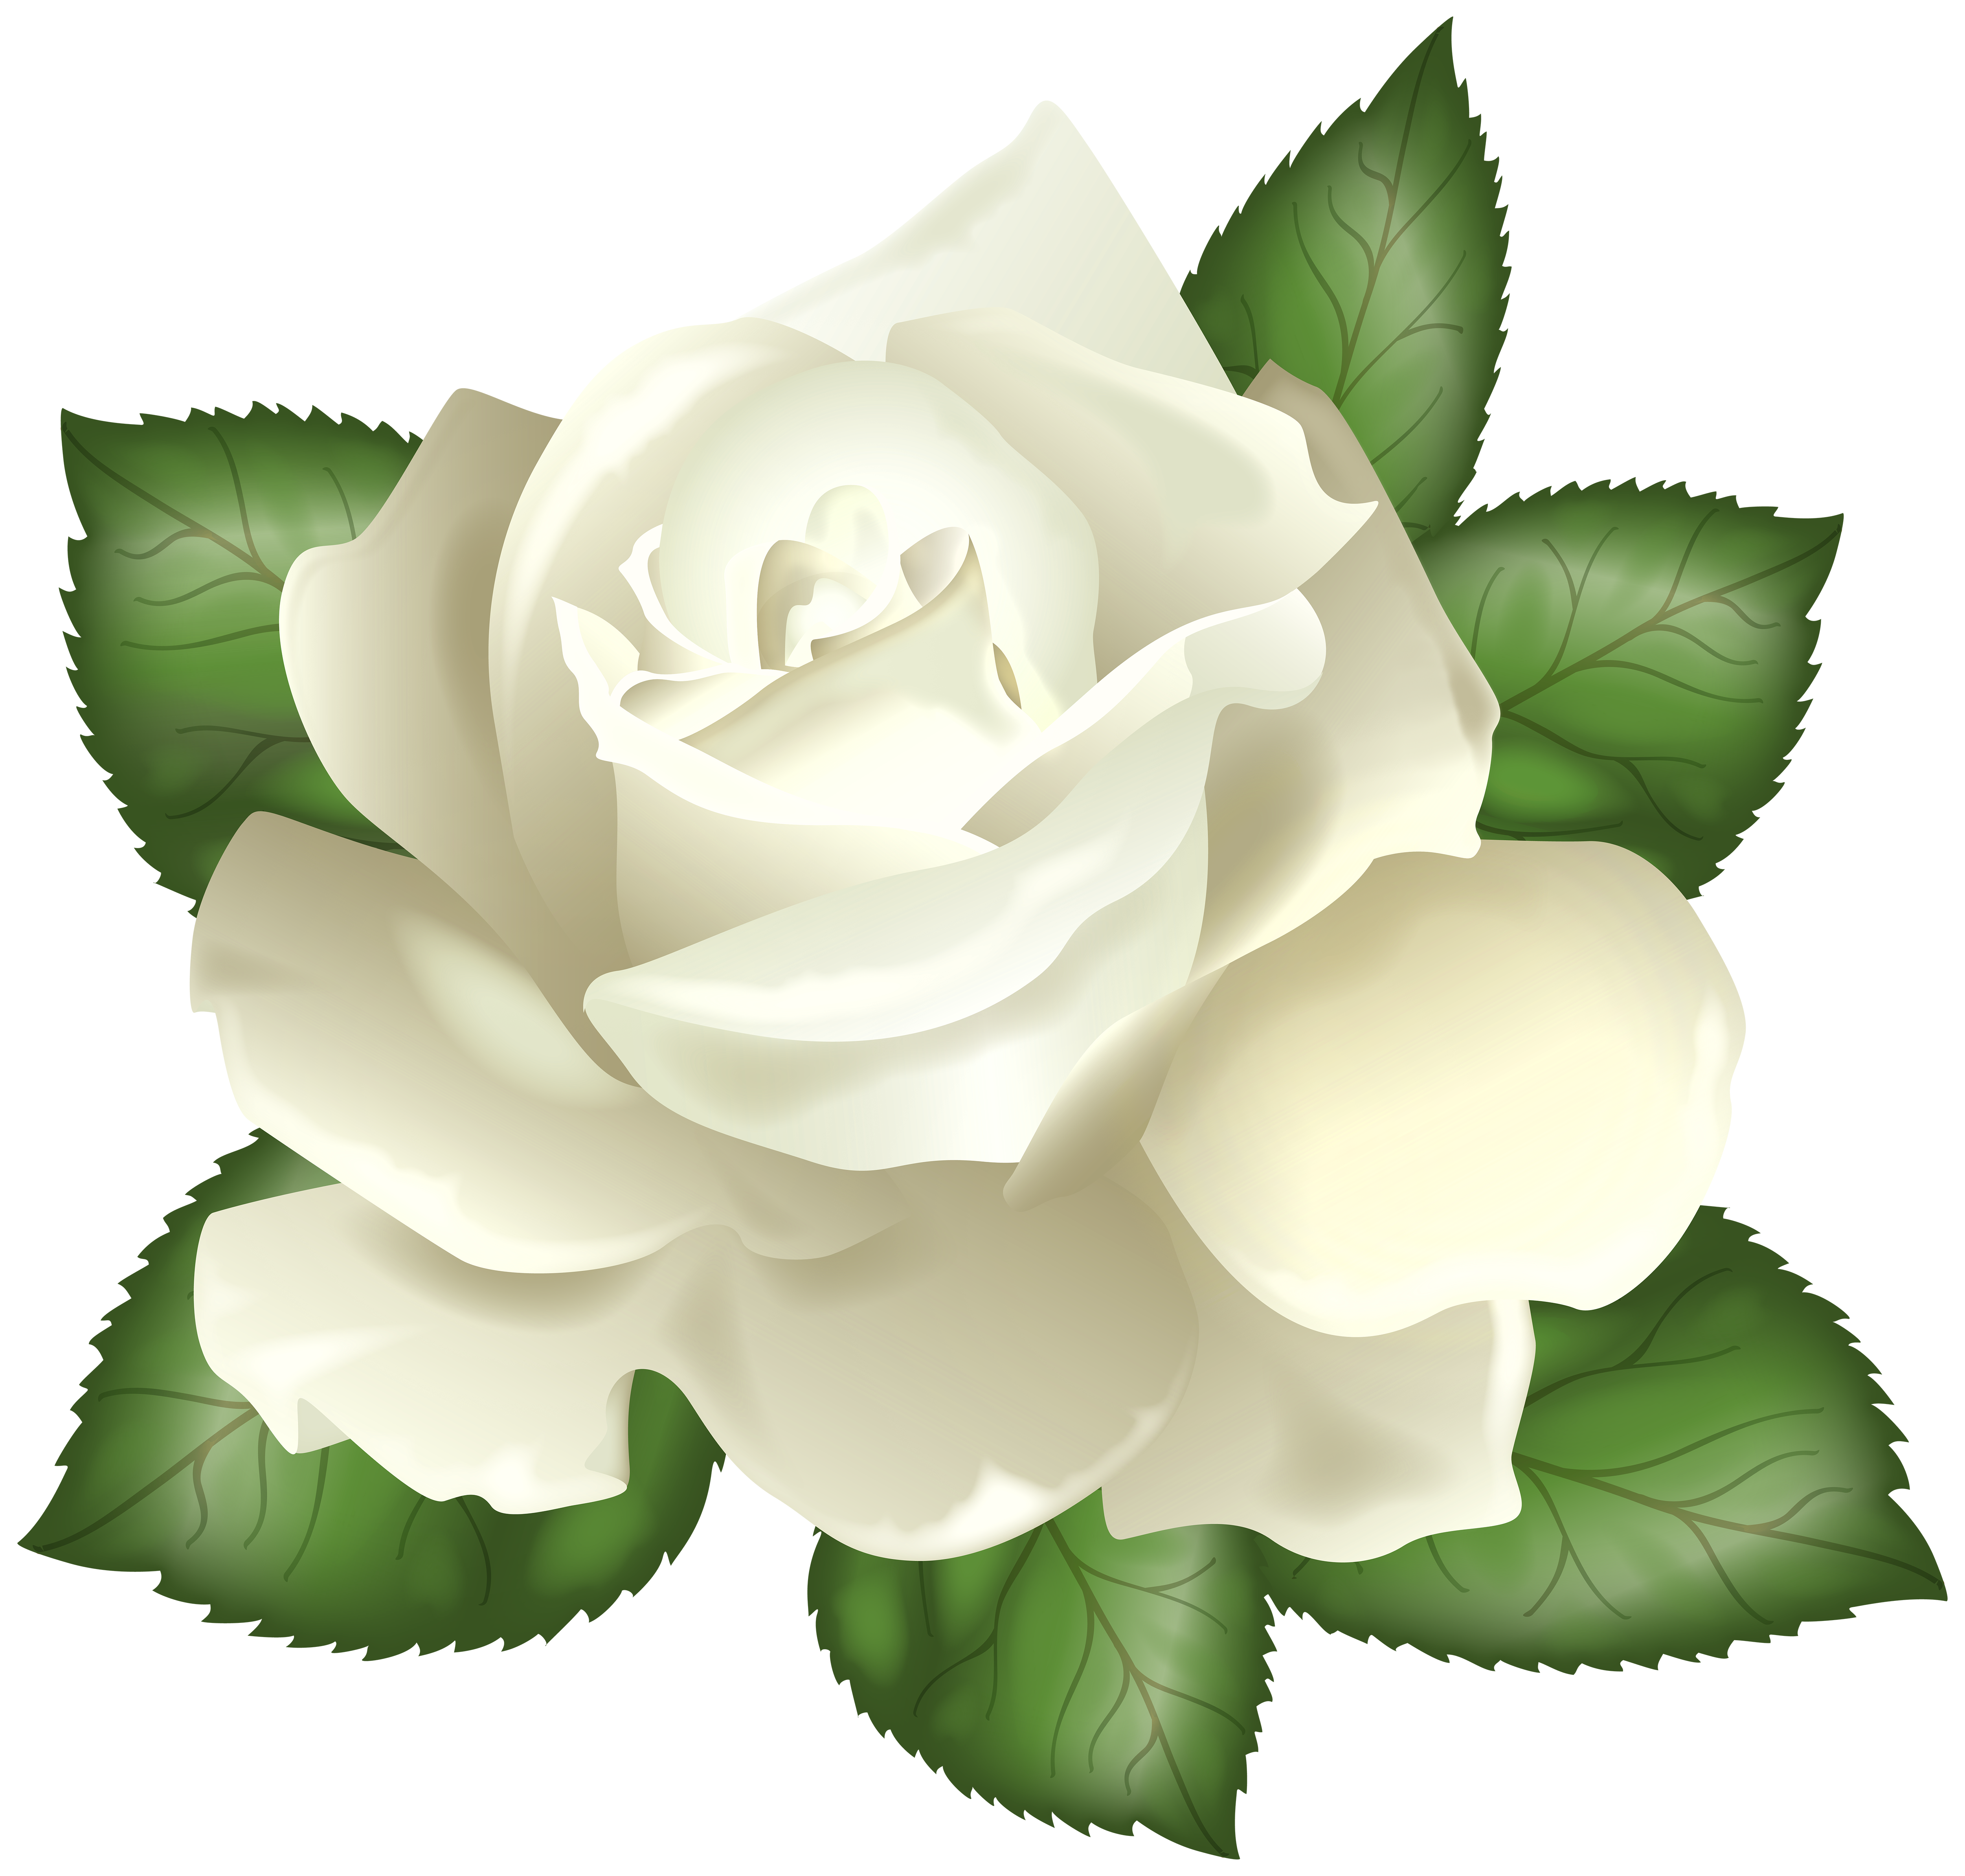 White rose transparent png. Clipart roses cartoon